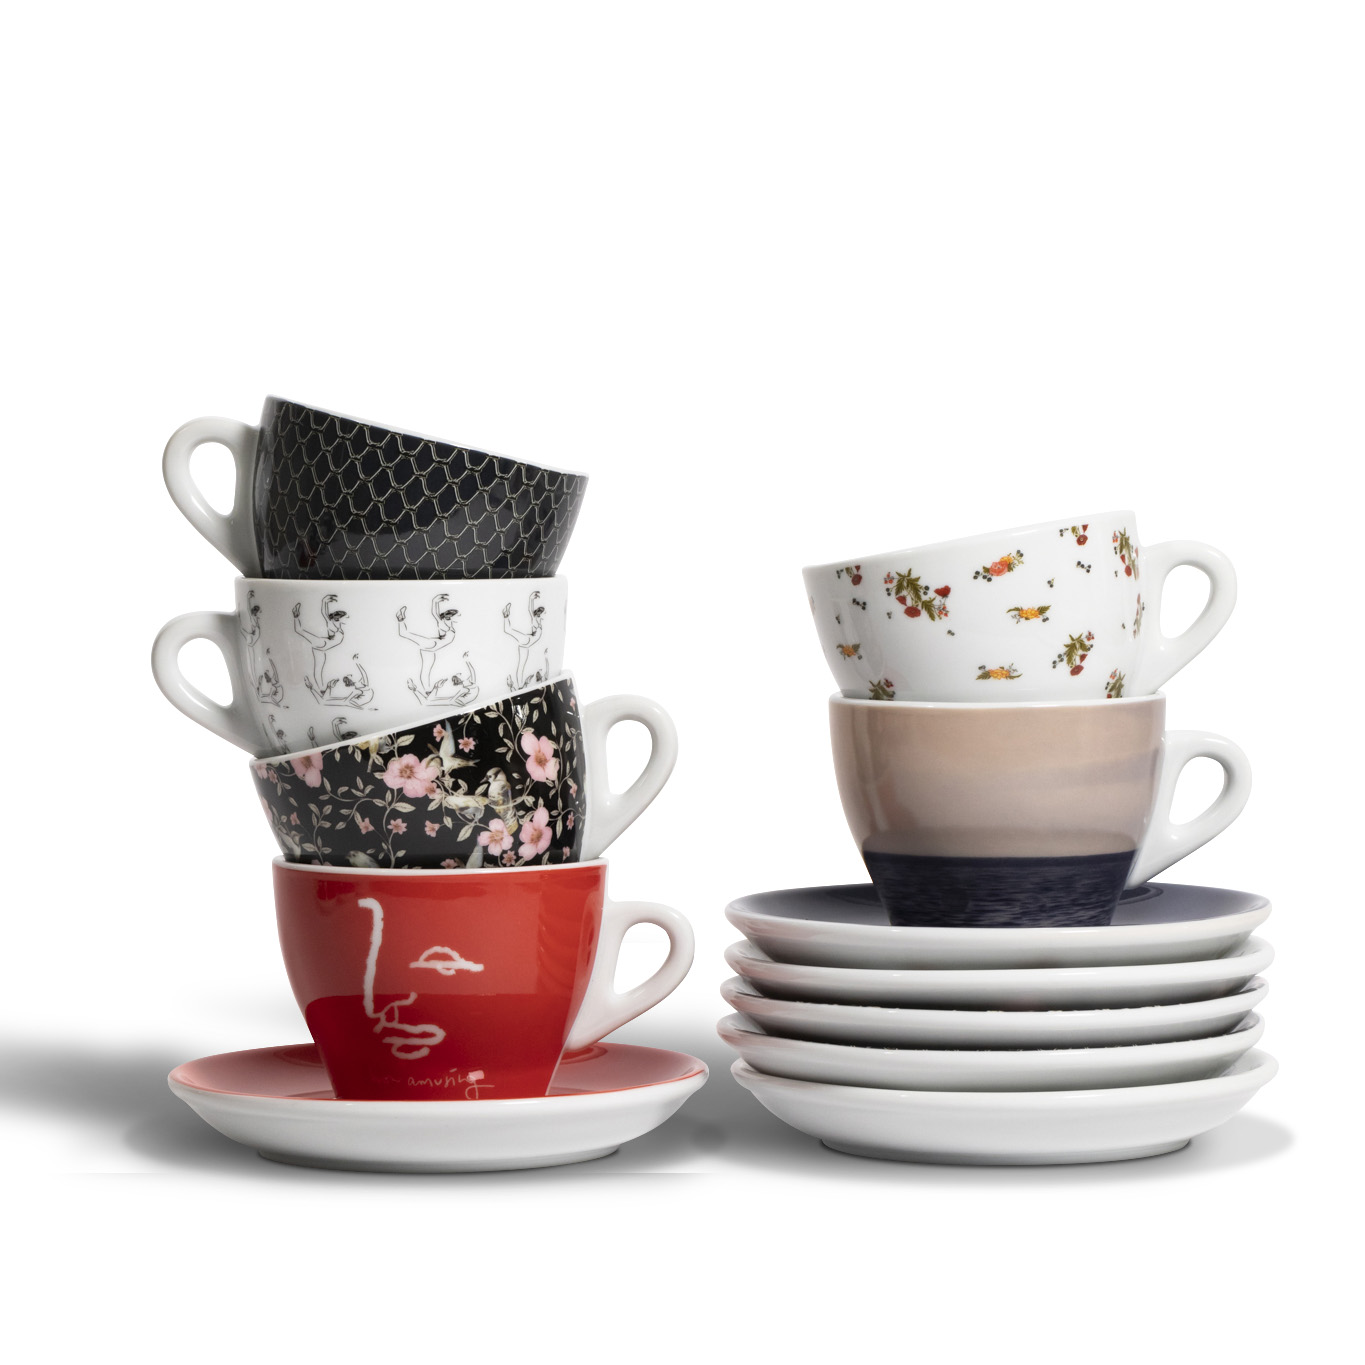 2019 Fashion Series Cappuccino Cup & Saucer Set